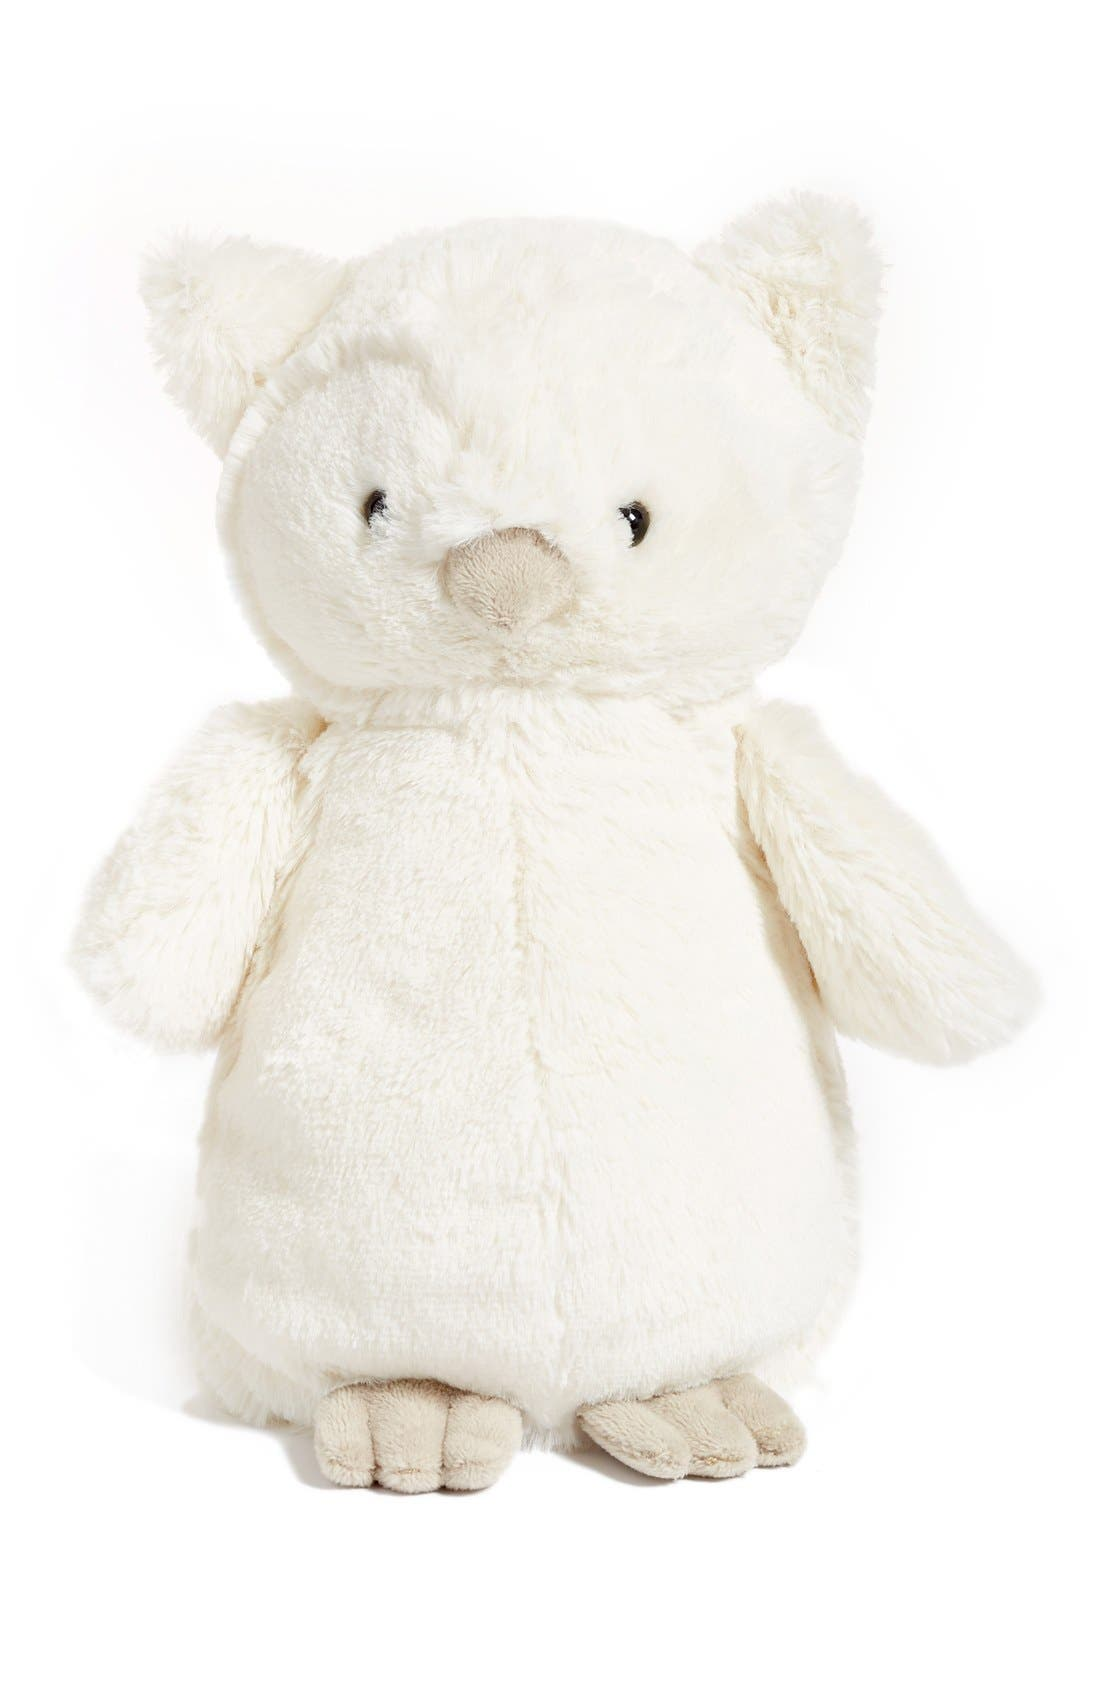 Main Image - Jellycat 'Woodland Owl' Stuffed Animal